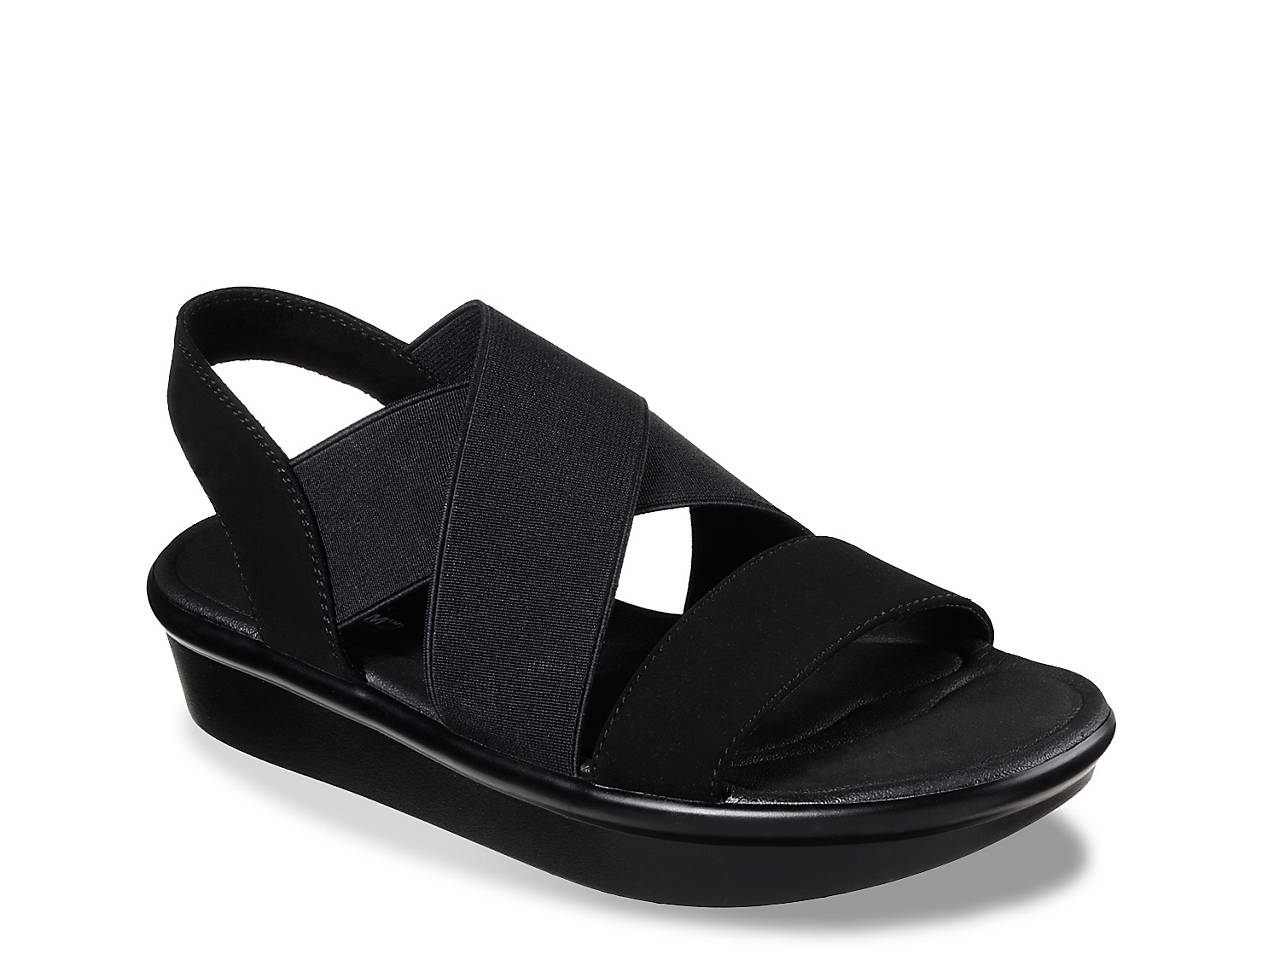 Super Style Platform Sandal by Skechers